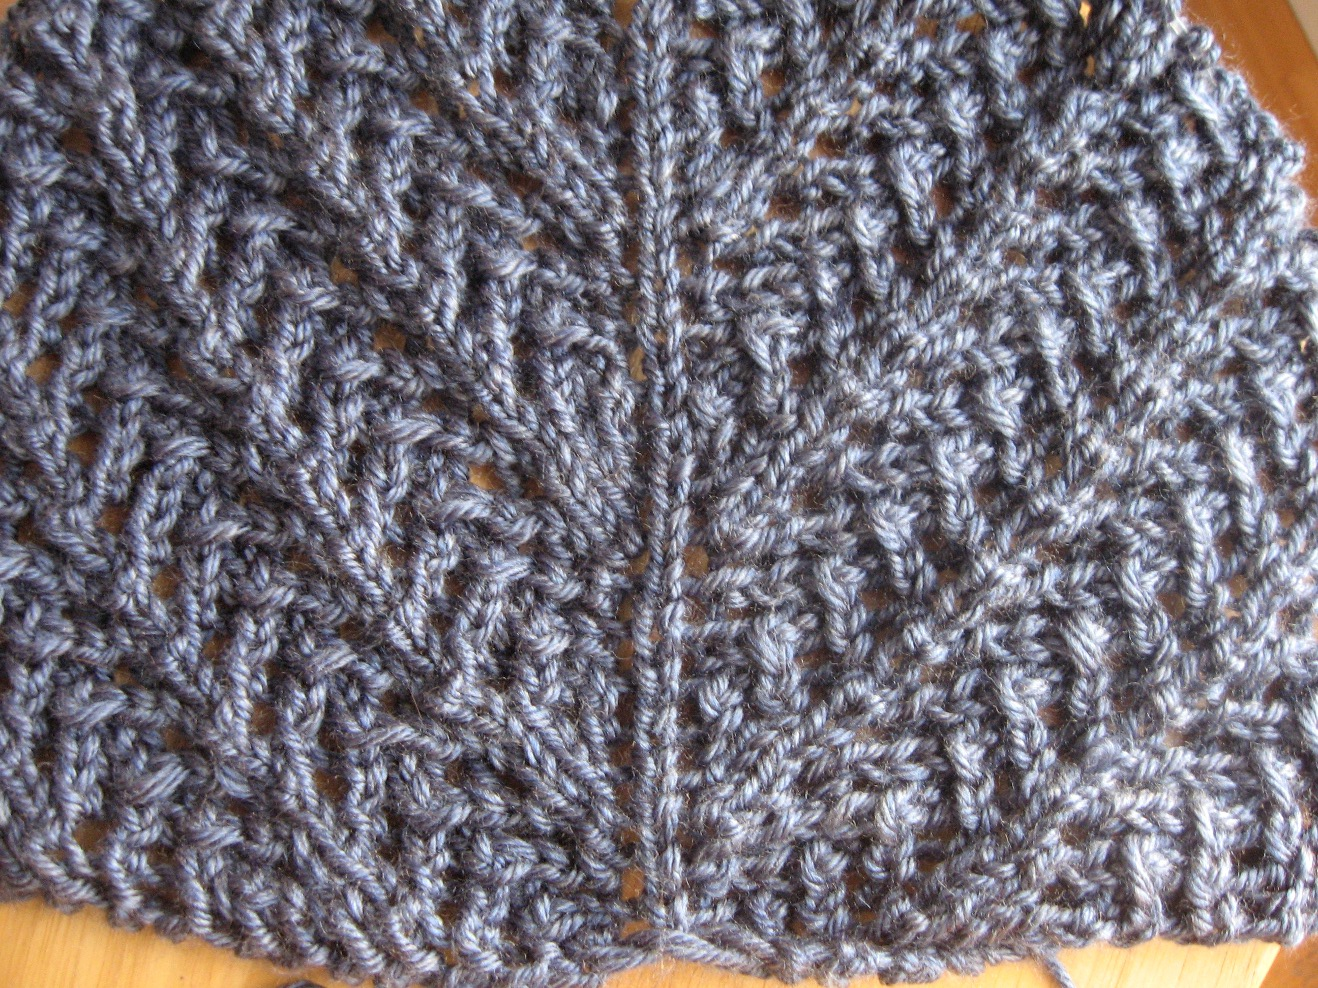 Knits By Nat: Working on the Little Arrowhead Shawl